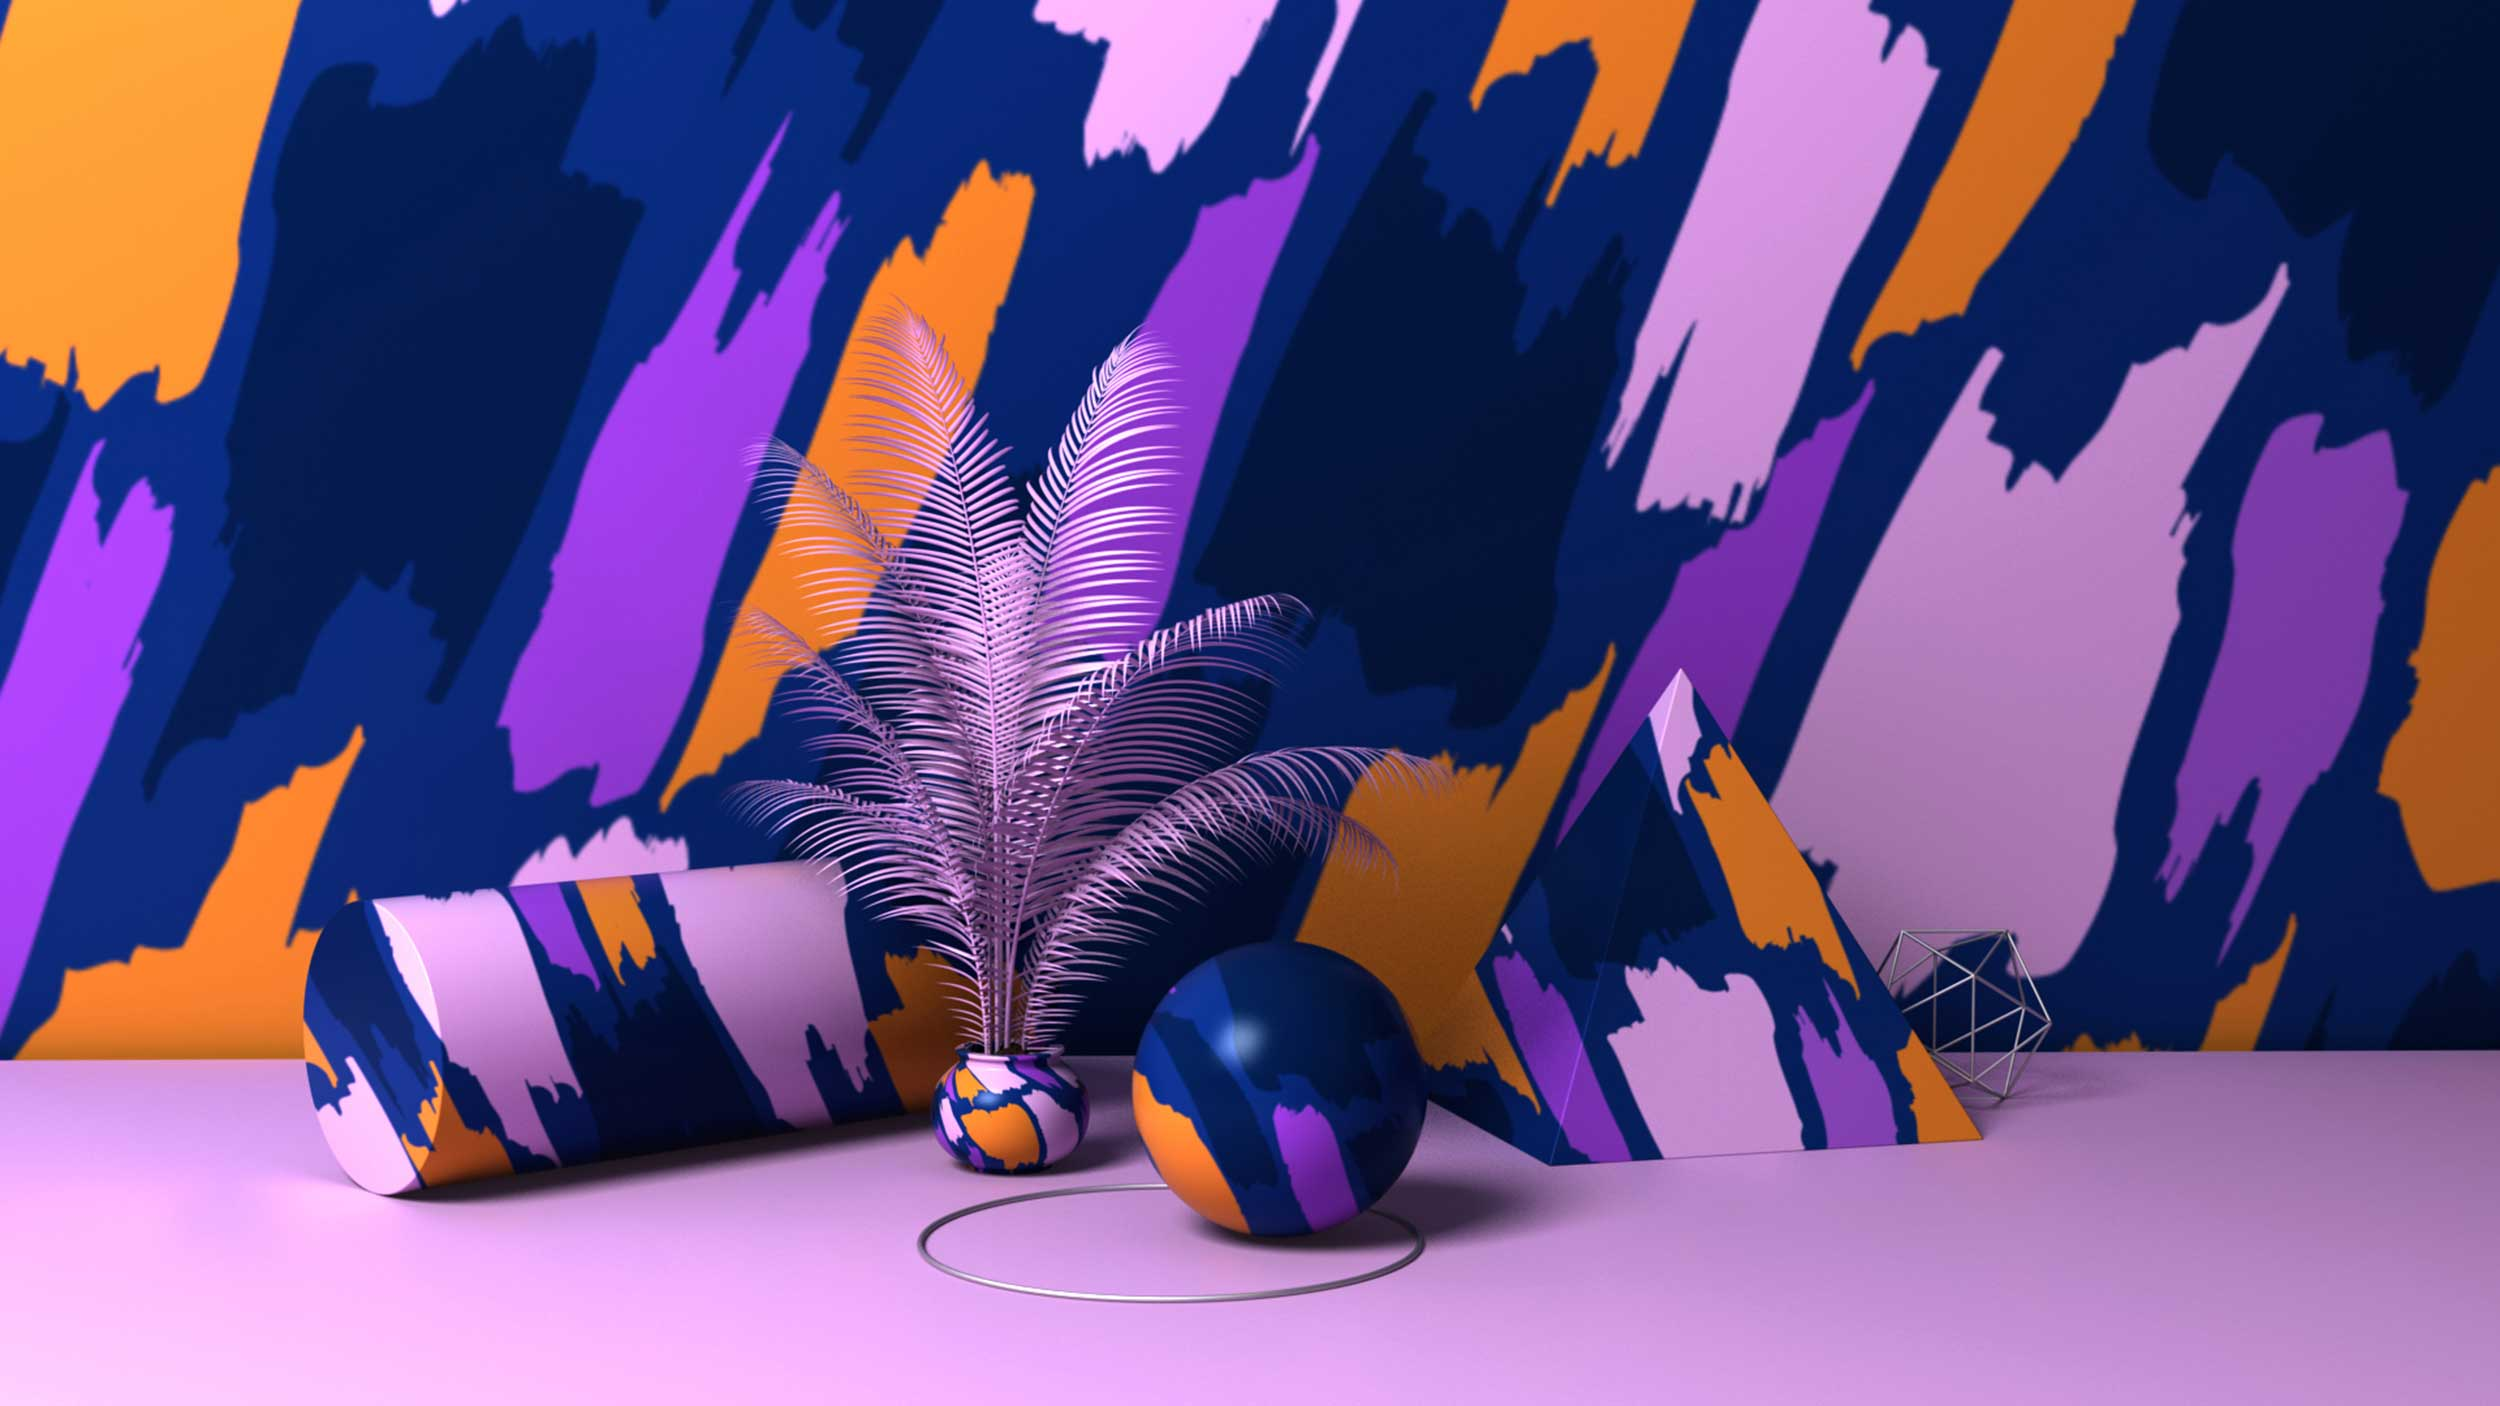 cgi-logos-type-design-Blue,-pink,-purple-and-orange-color-designed-geometric-shapes-with-palm-leaves-Nico Castro